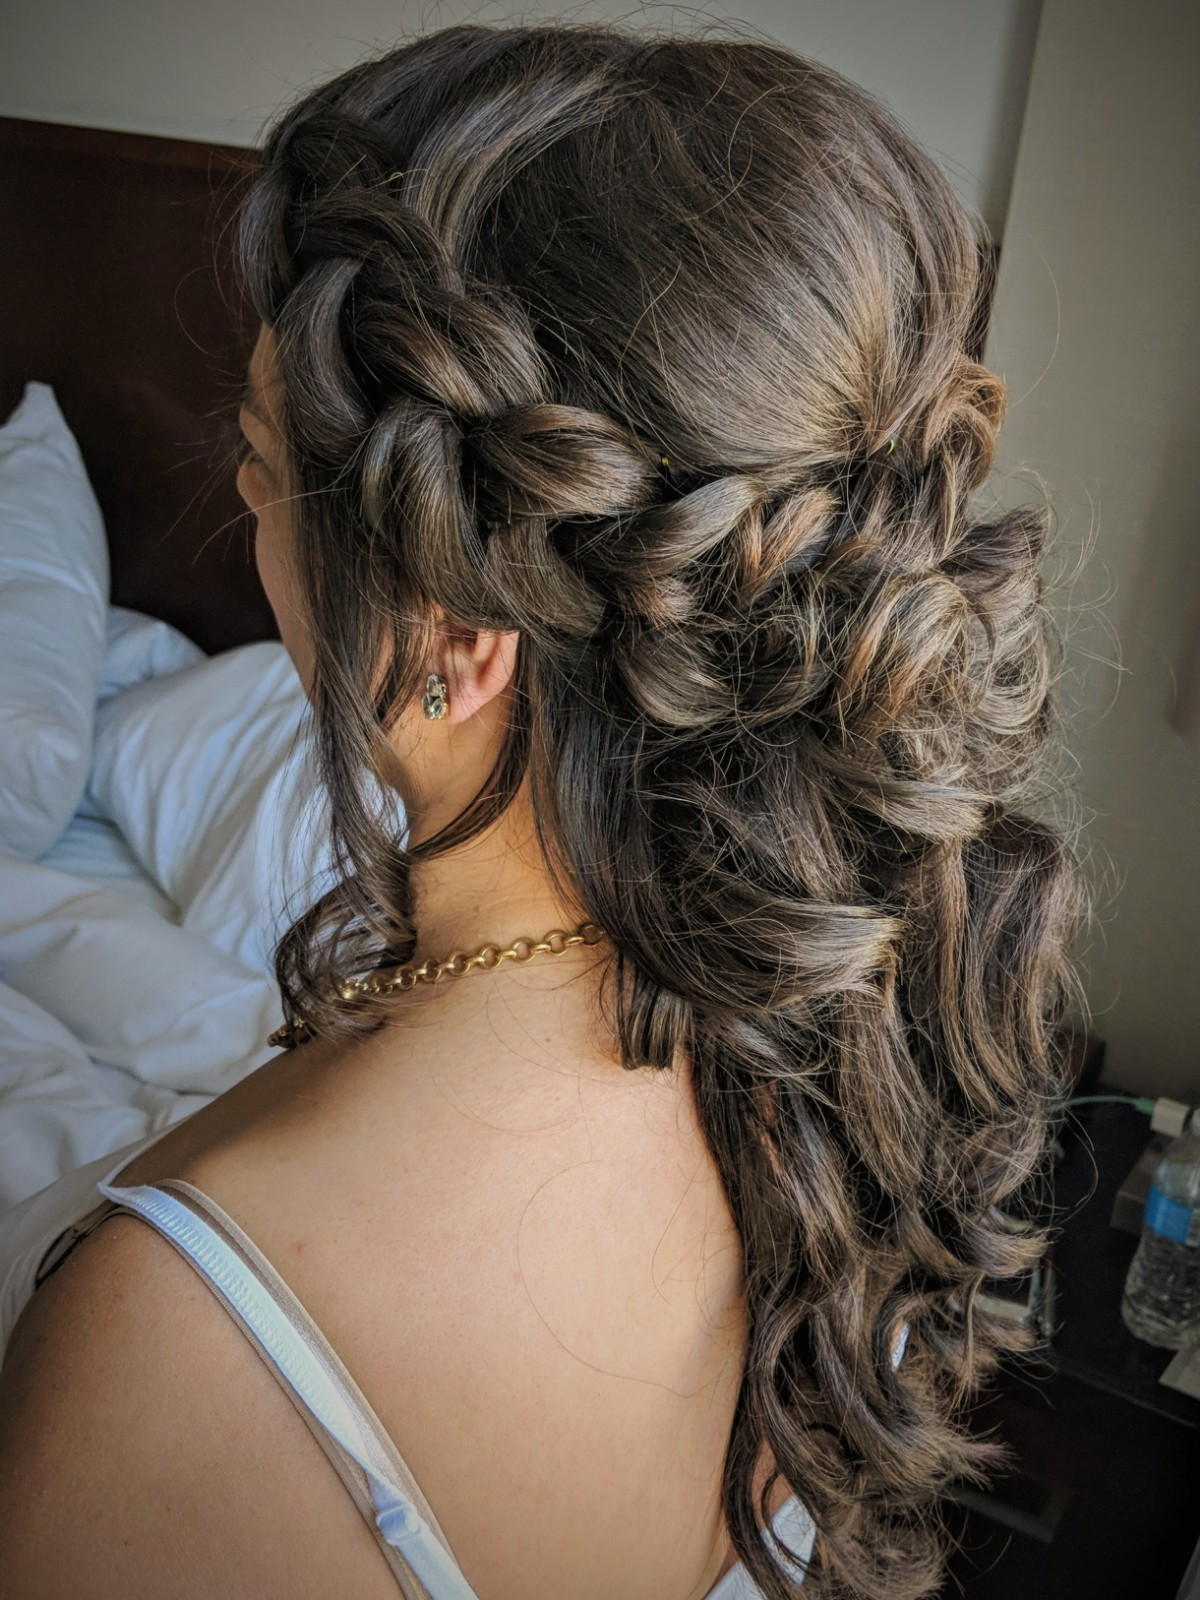 Extensions on a bob haircut for bridal updo